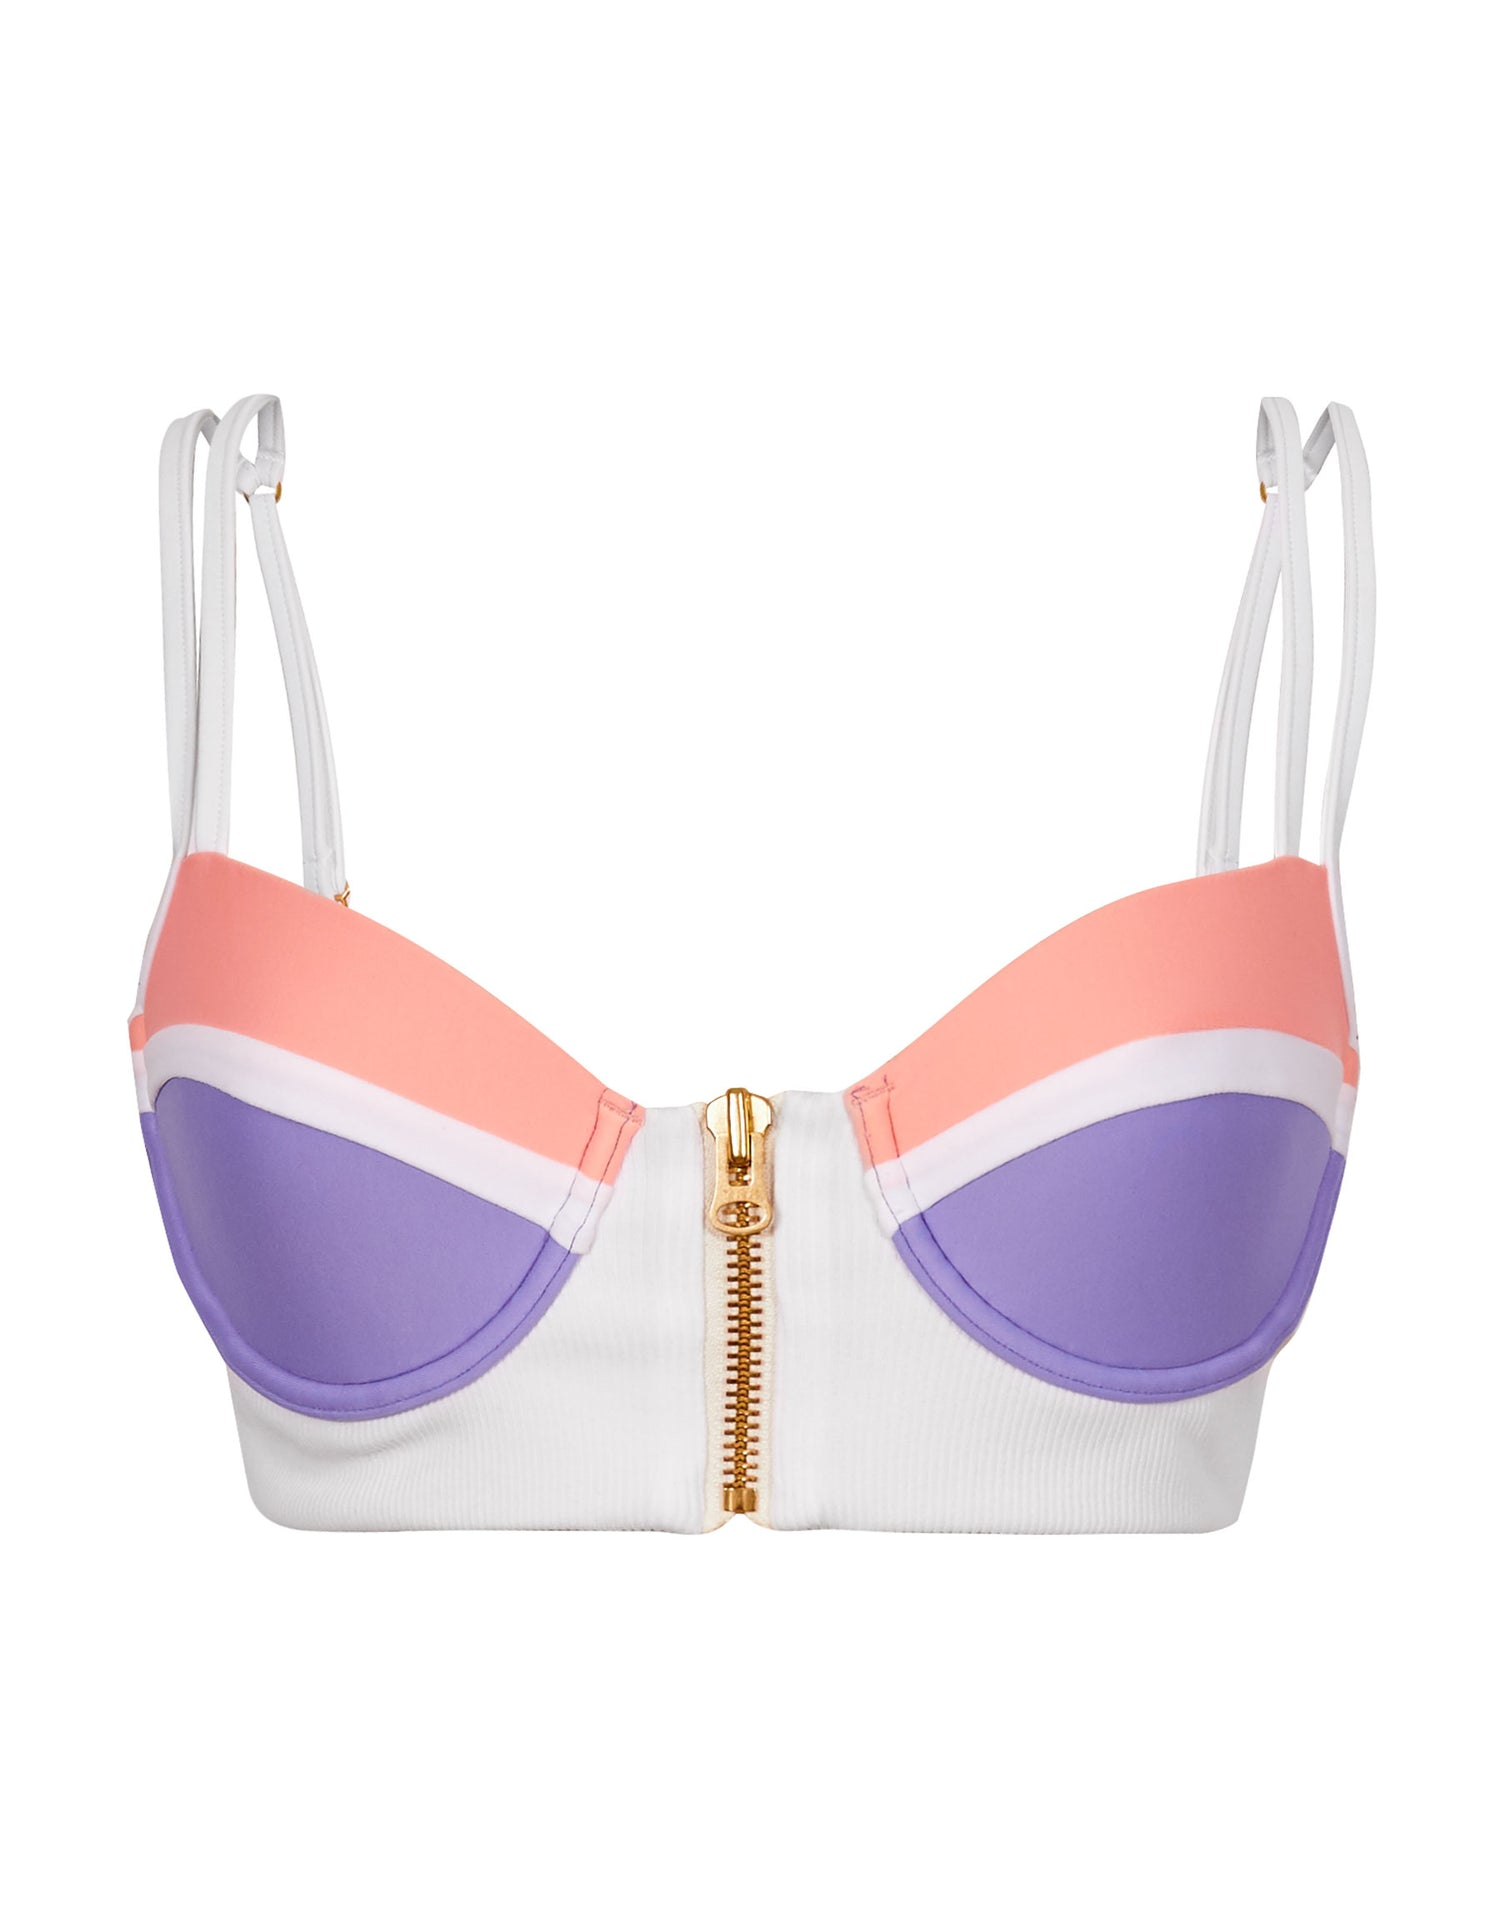 Endless Summer Push Up Bikini Top in White/Sorbet/Lilac - product view